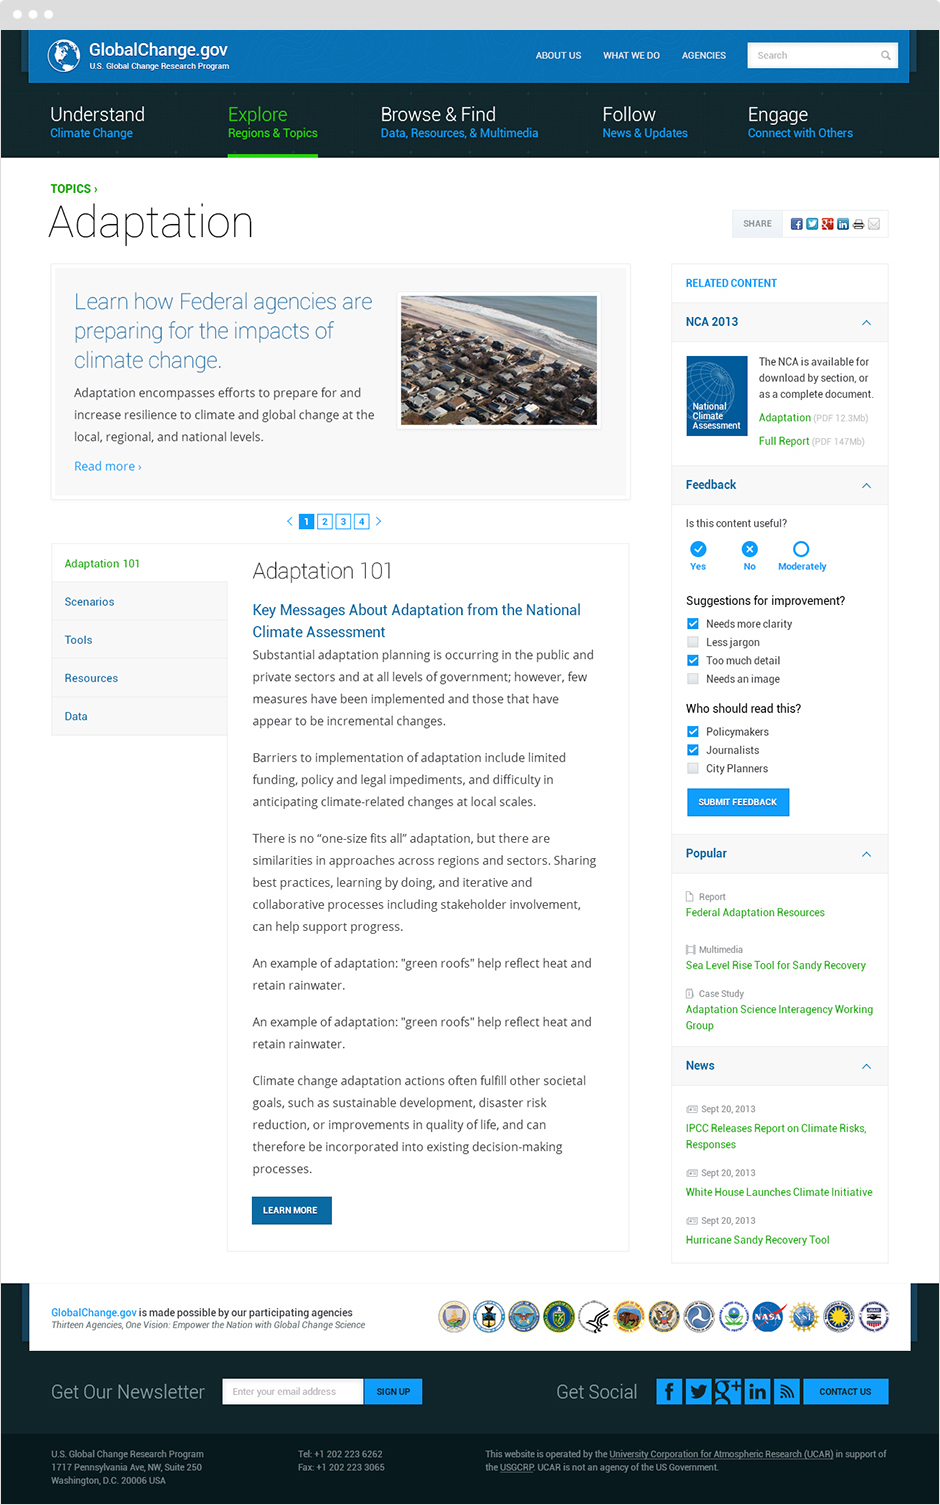 globalchange.gov Website Design and Development